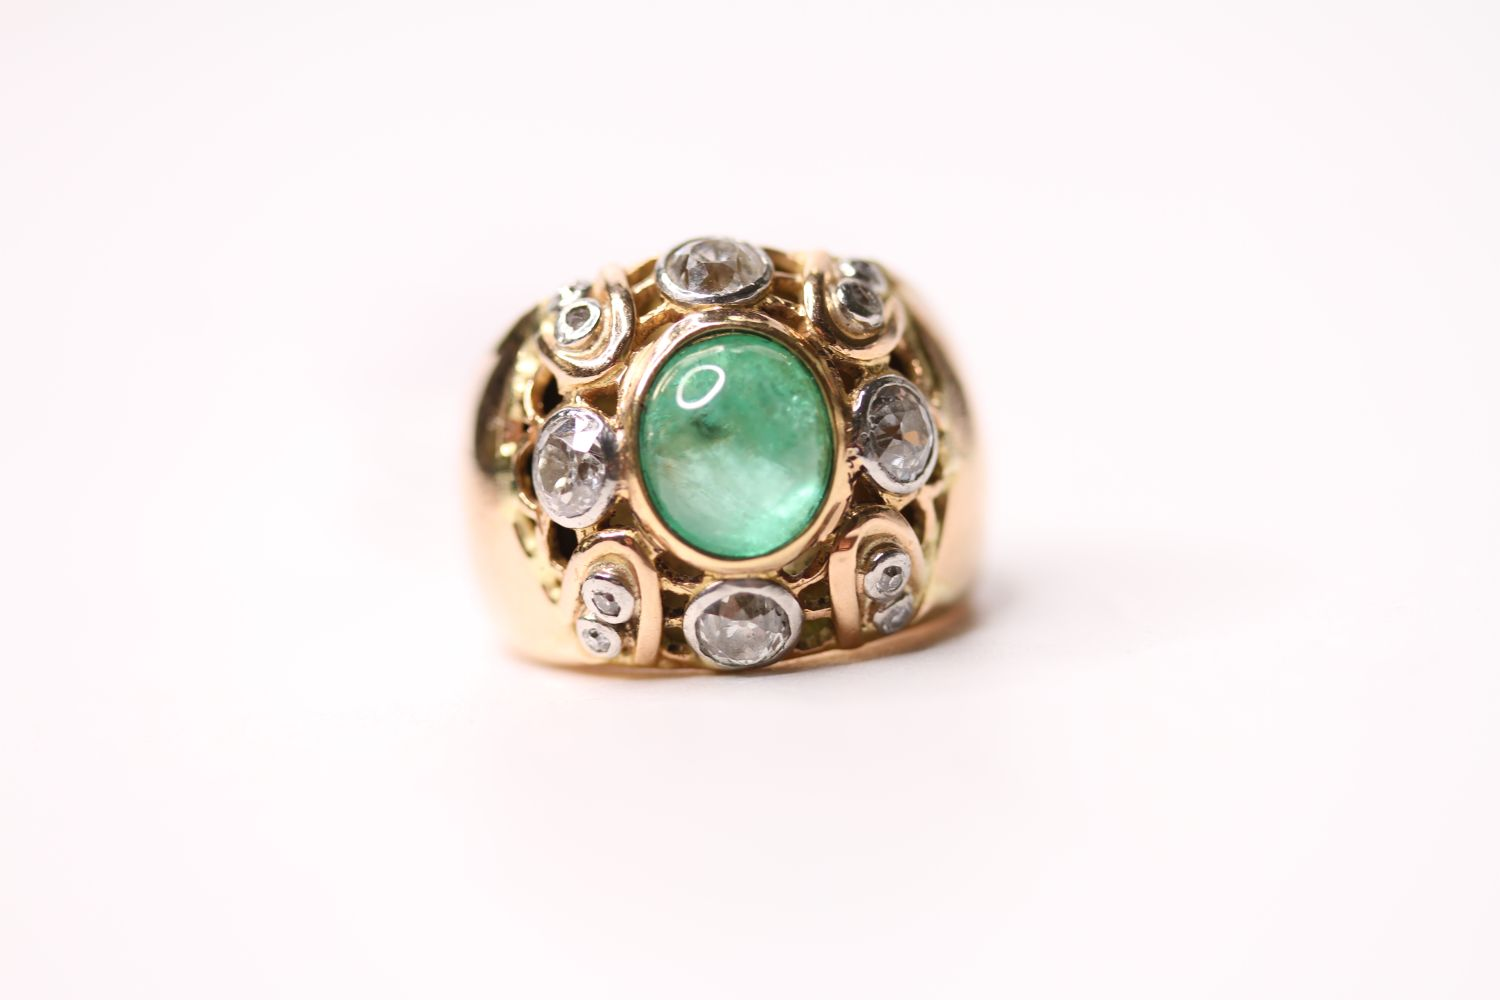 Emerald & Diamond Ring, set with a central cabochon cut emerald, surrounded by diamonds, french